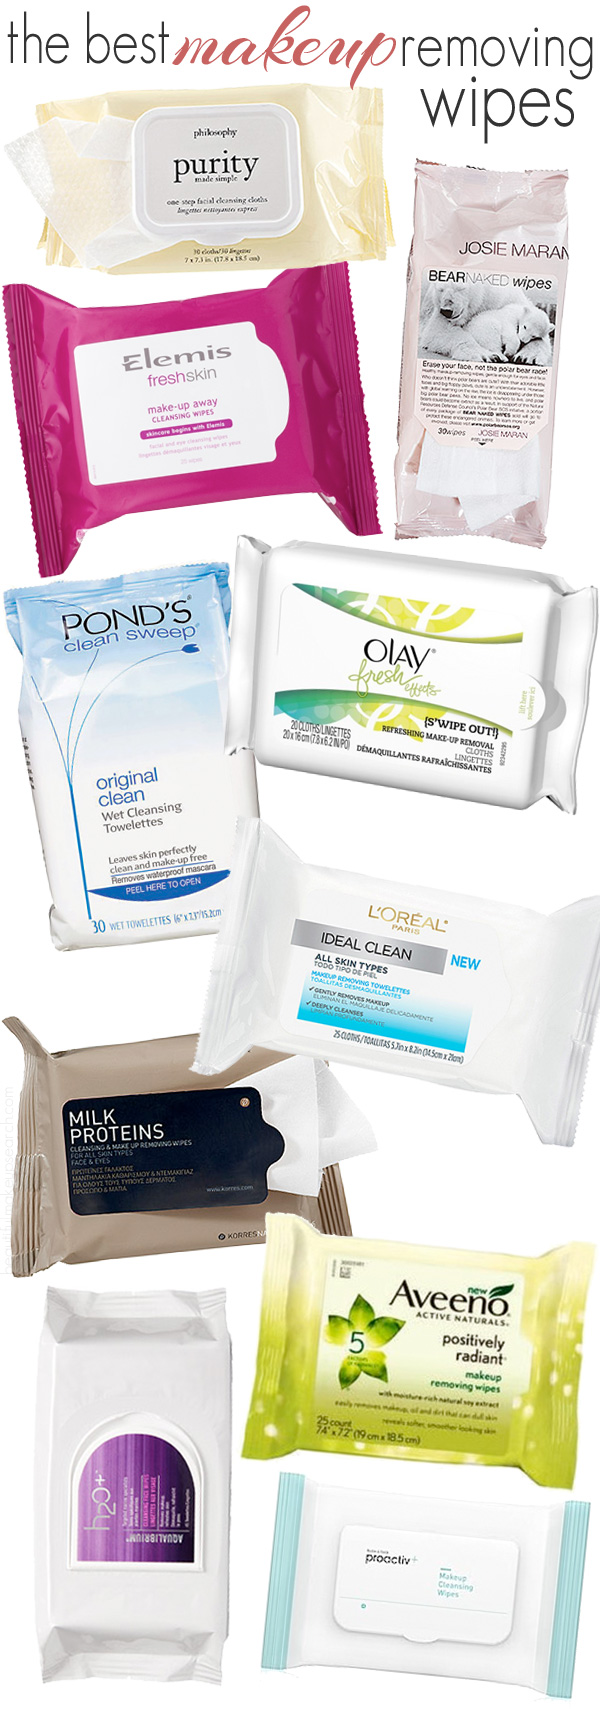 The best makeup removing wipes.